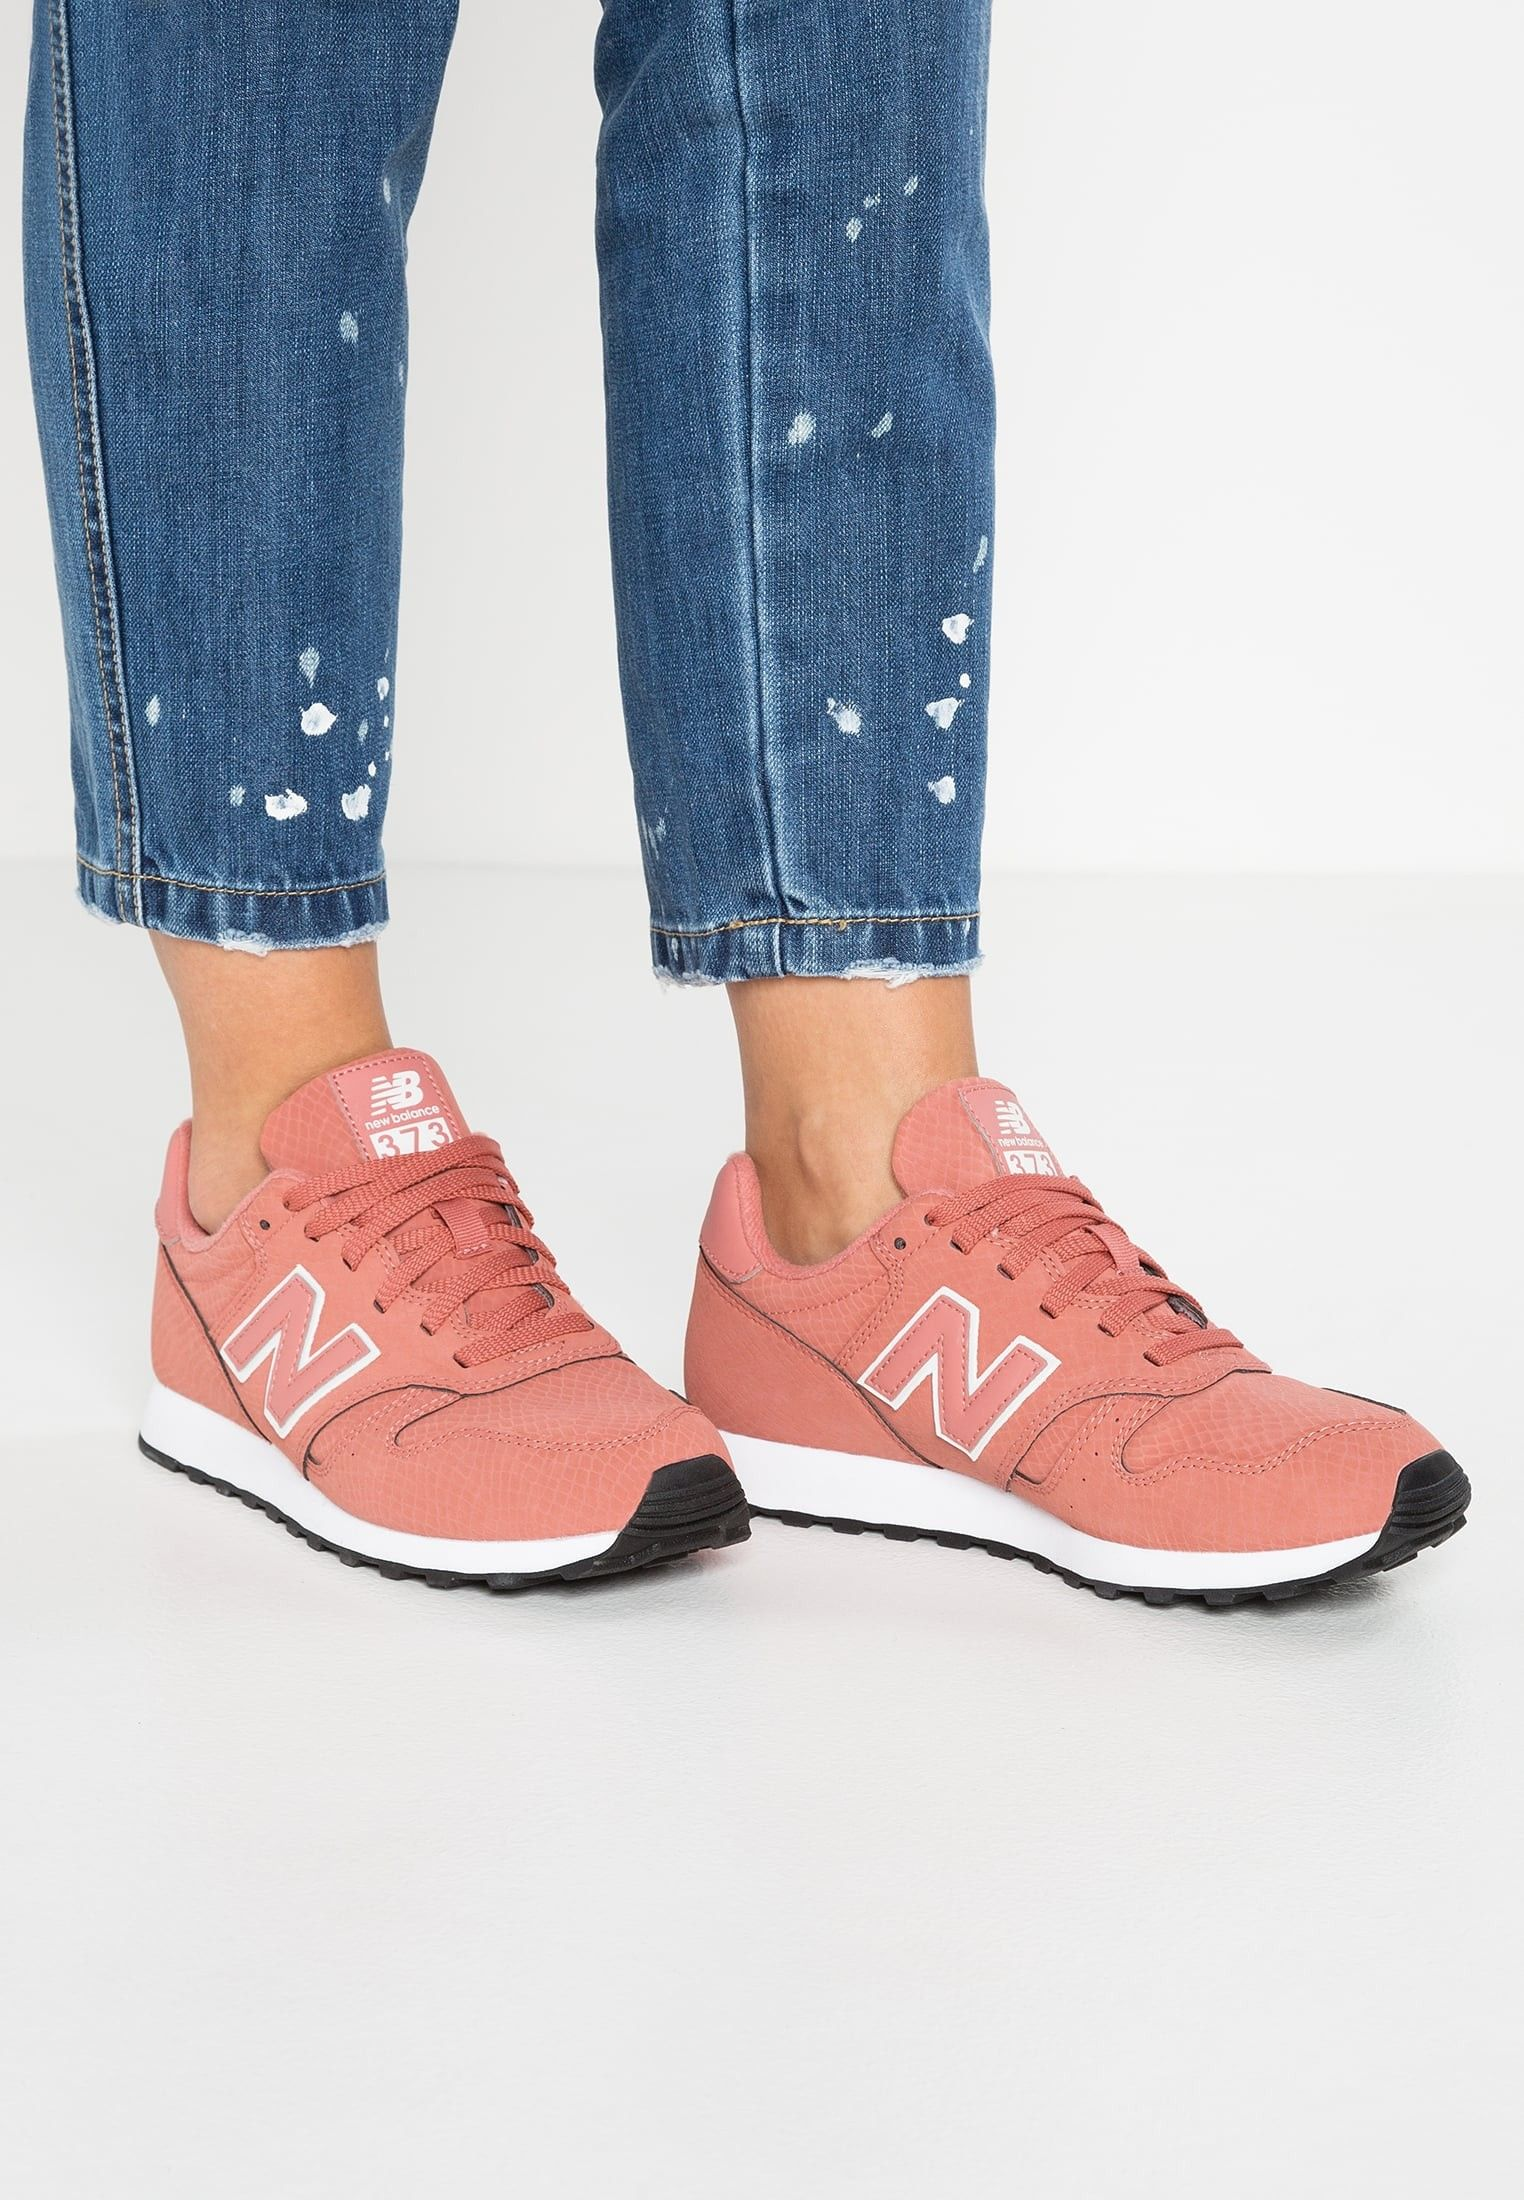 Nb shoes, Sneakers, Pink